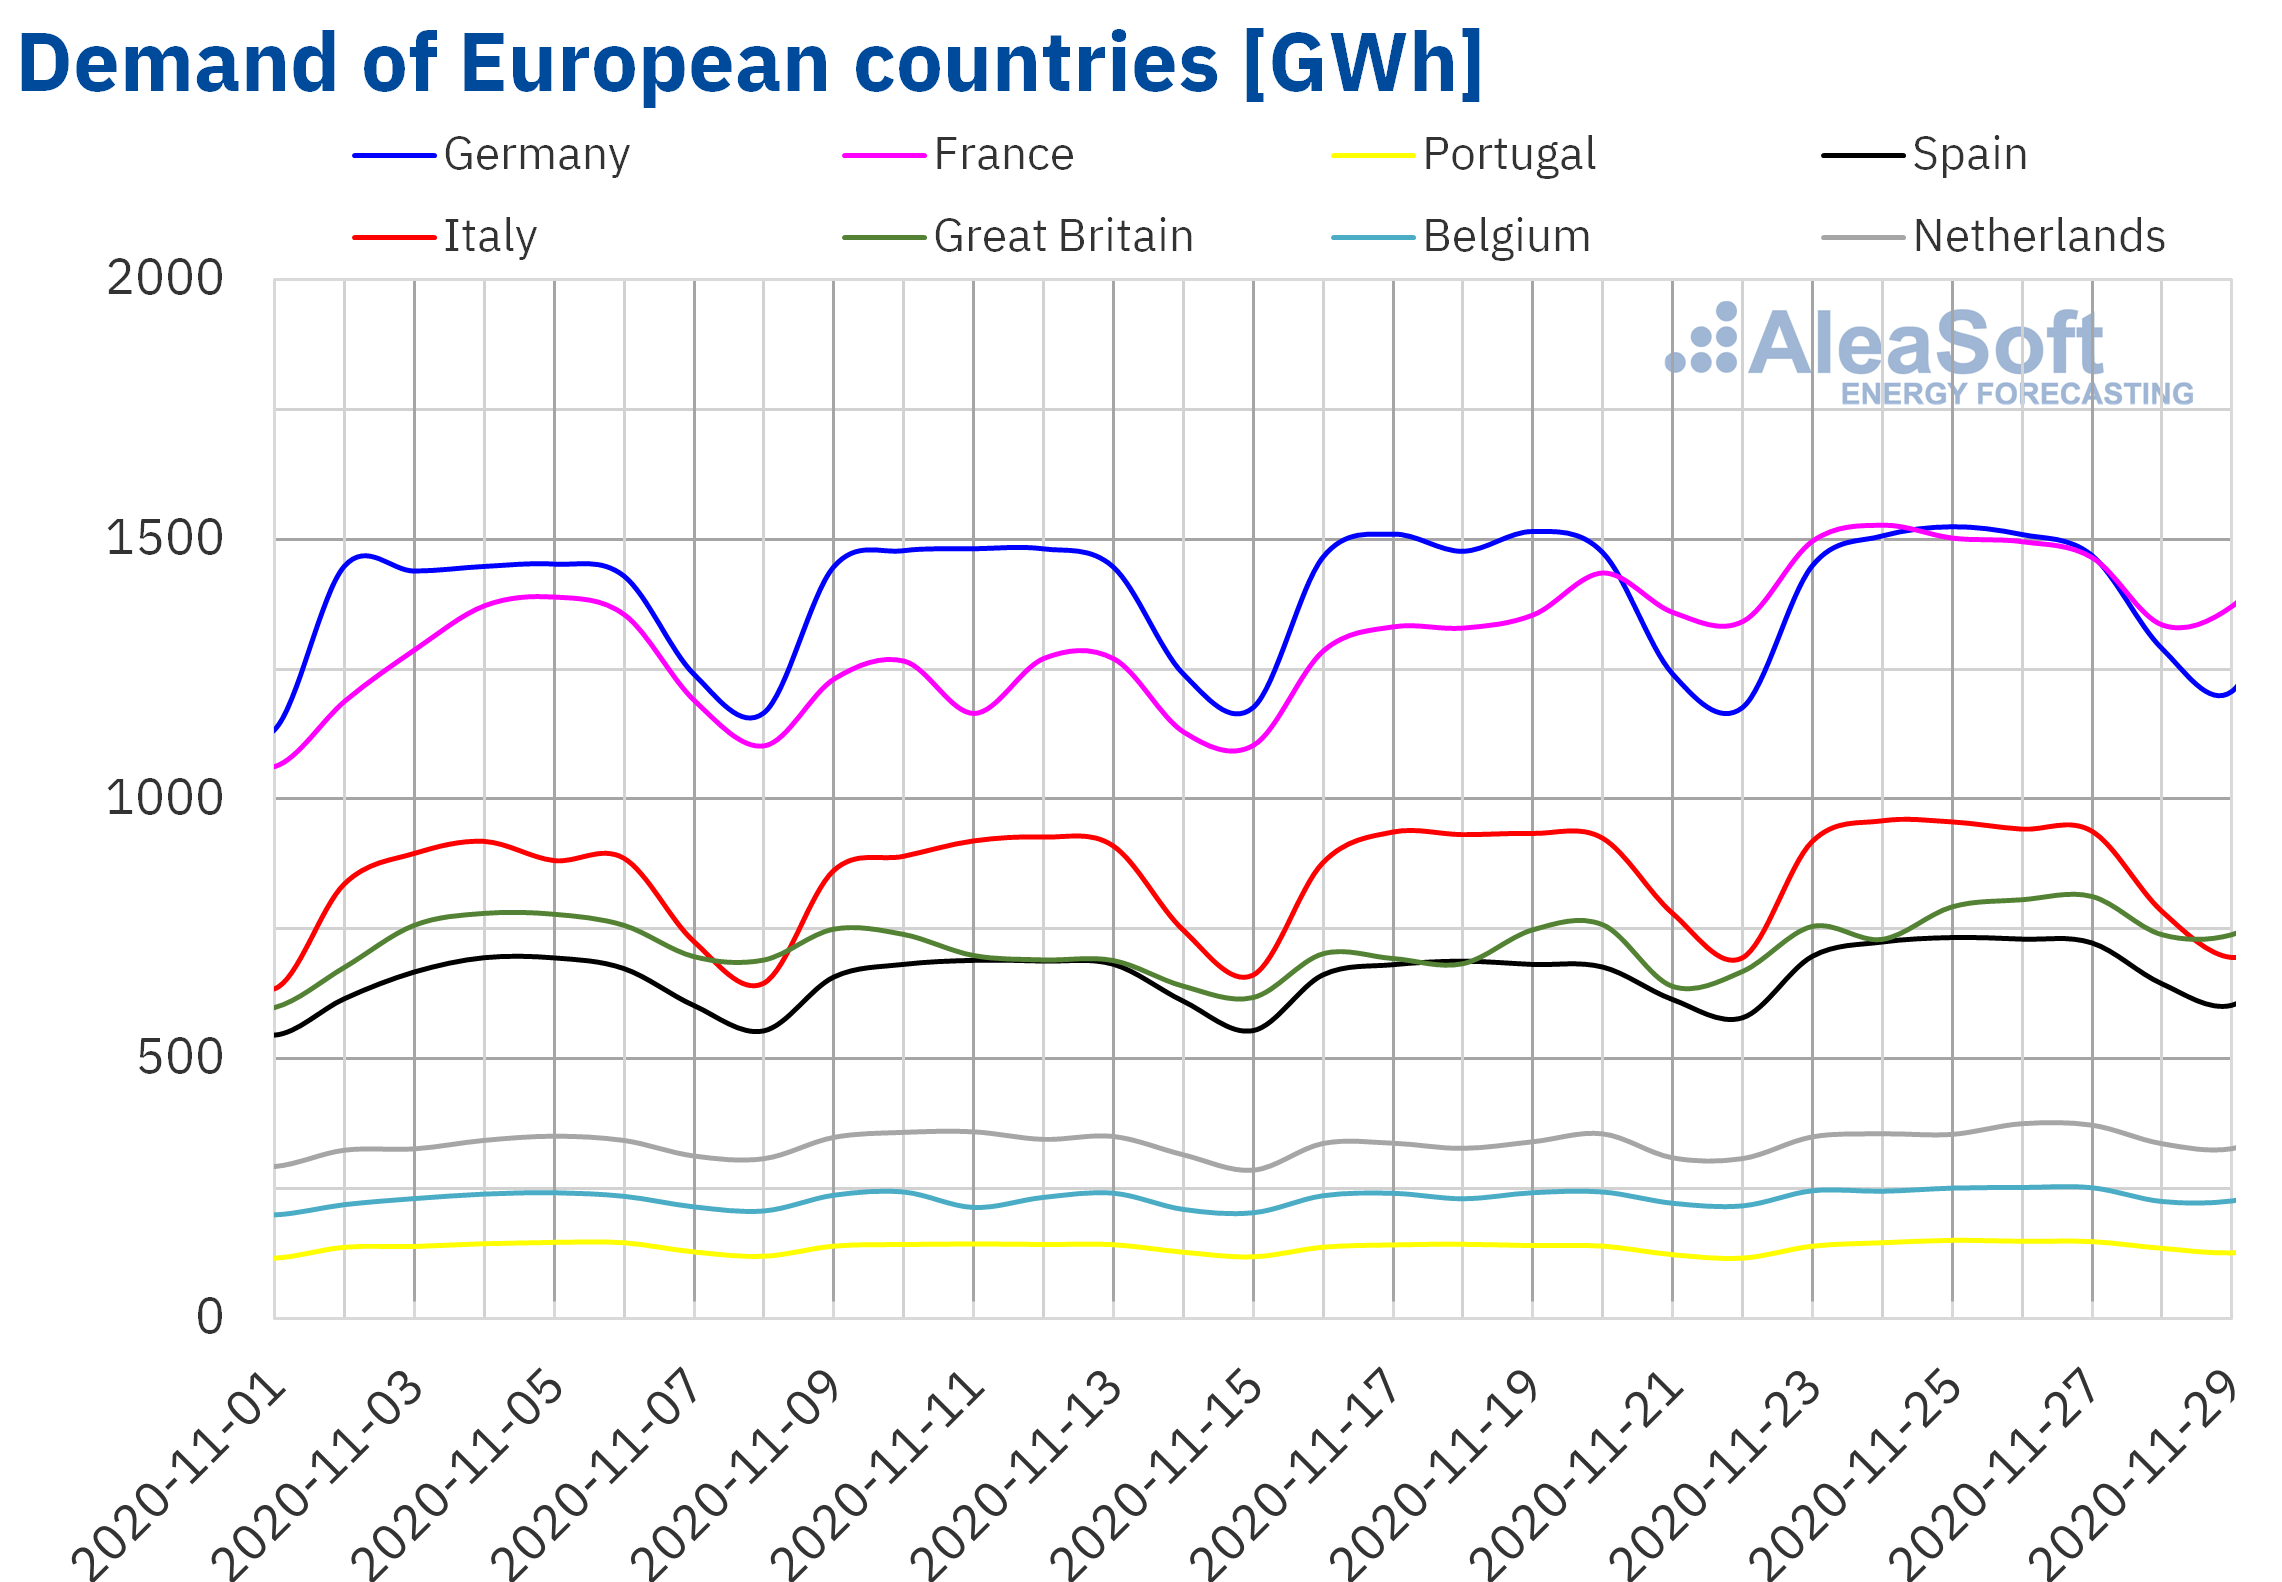 AleaSoft - Electricity demand of European countries